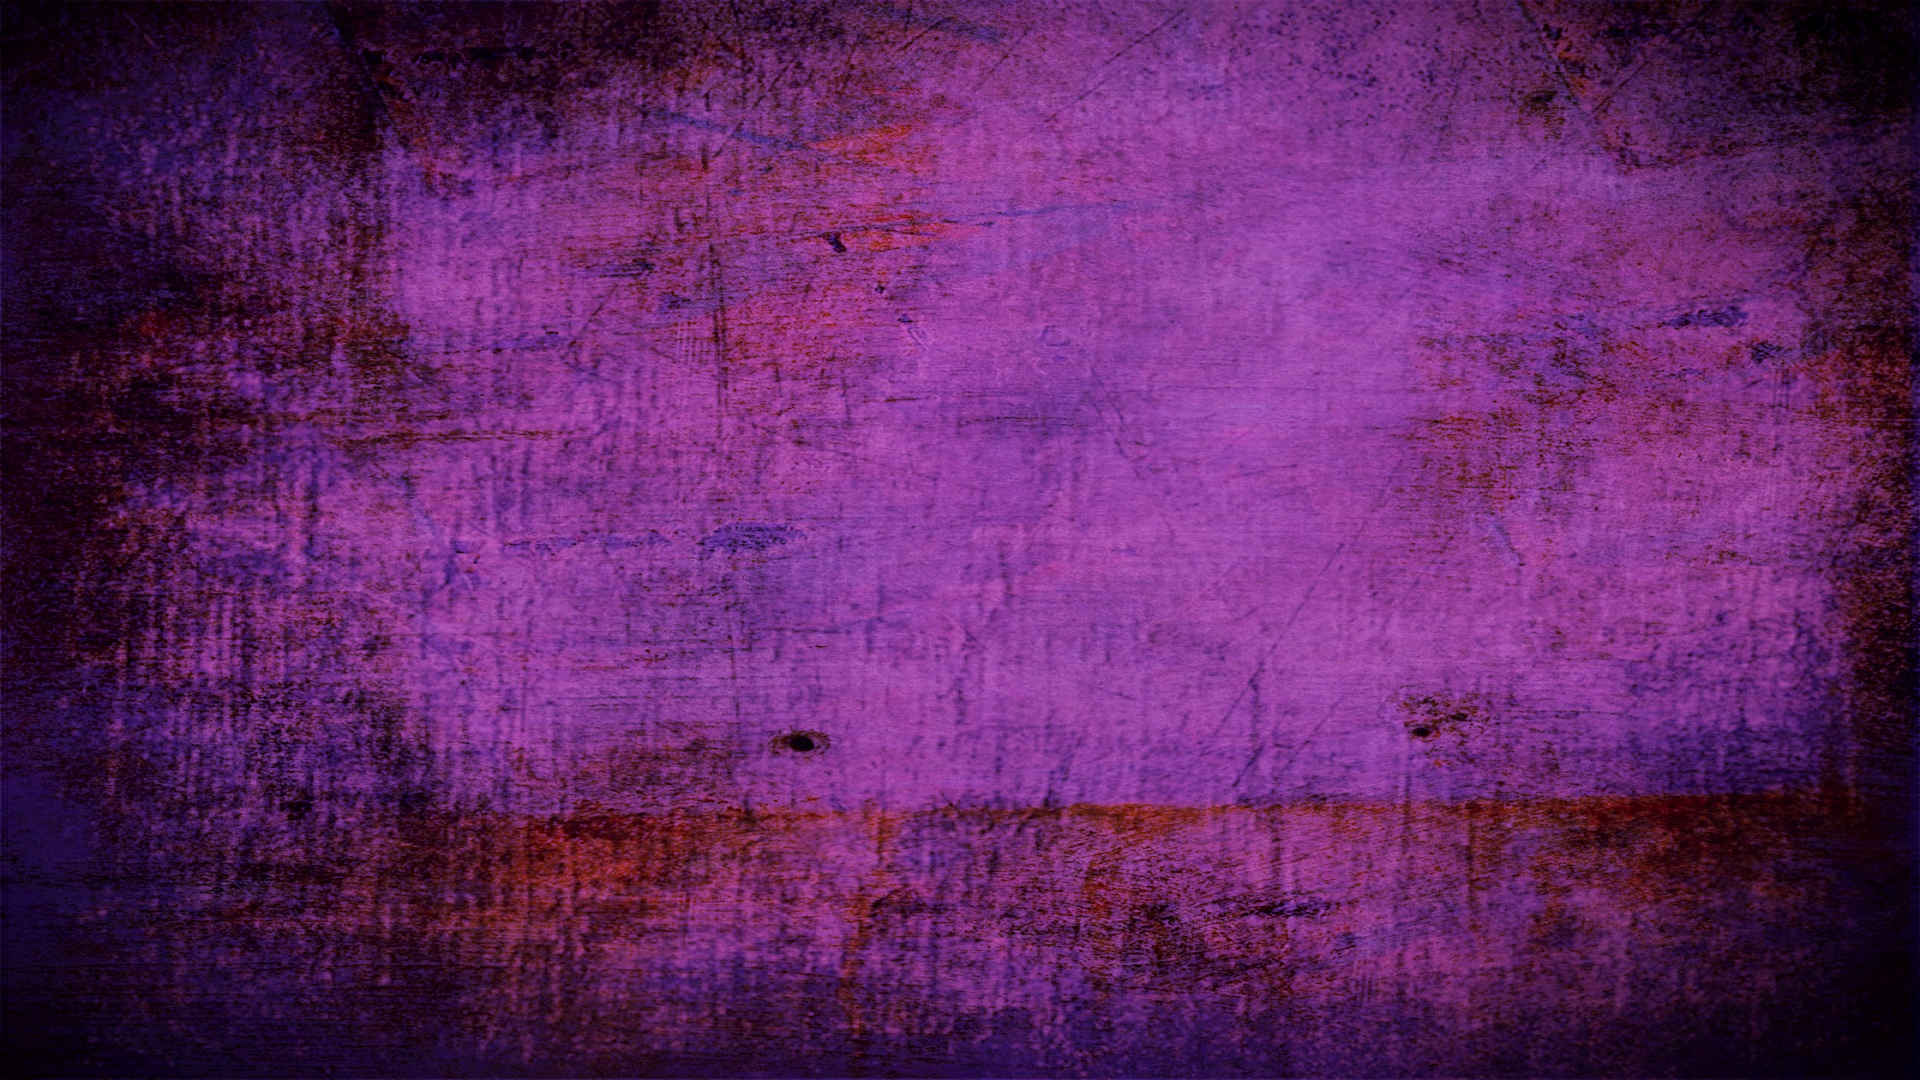 purple textured backgrounds wallpaper 1920x1080 32886